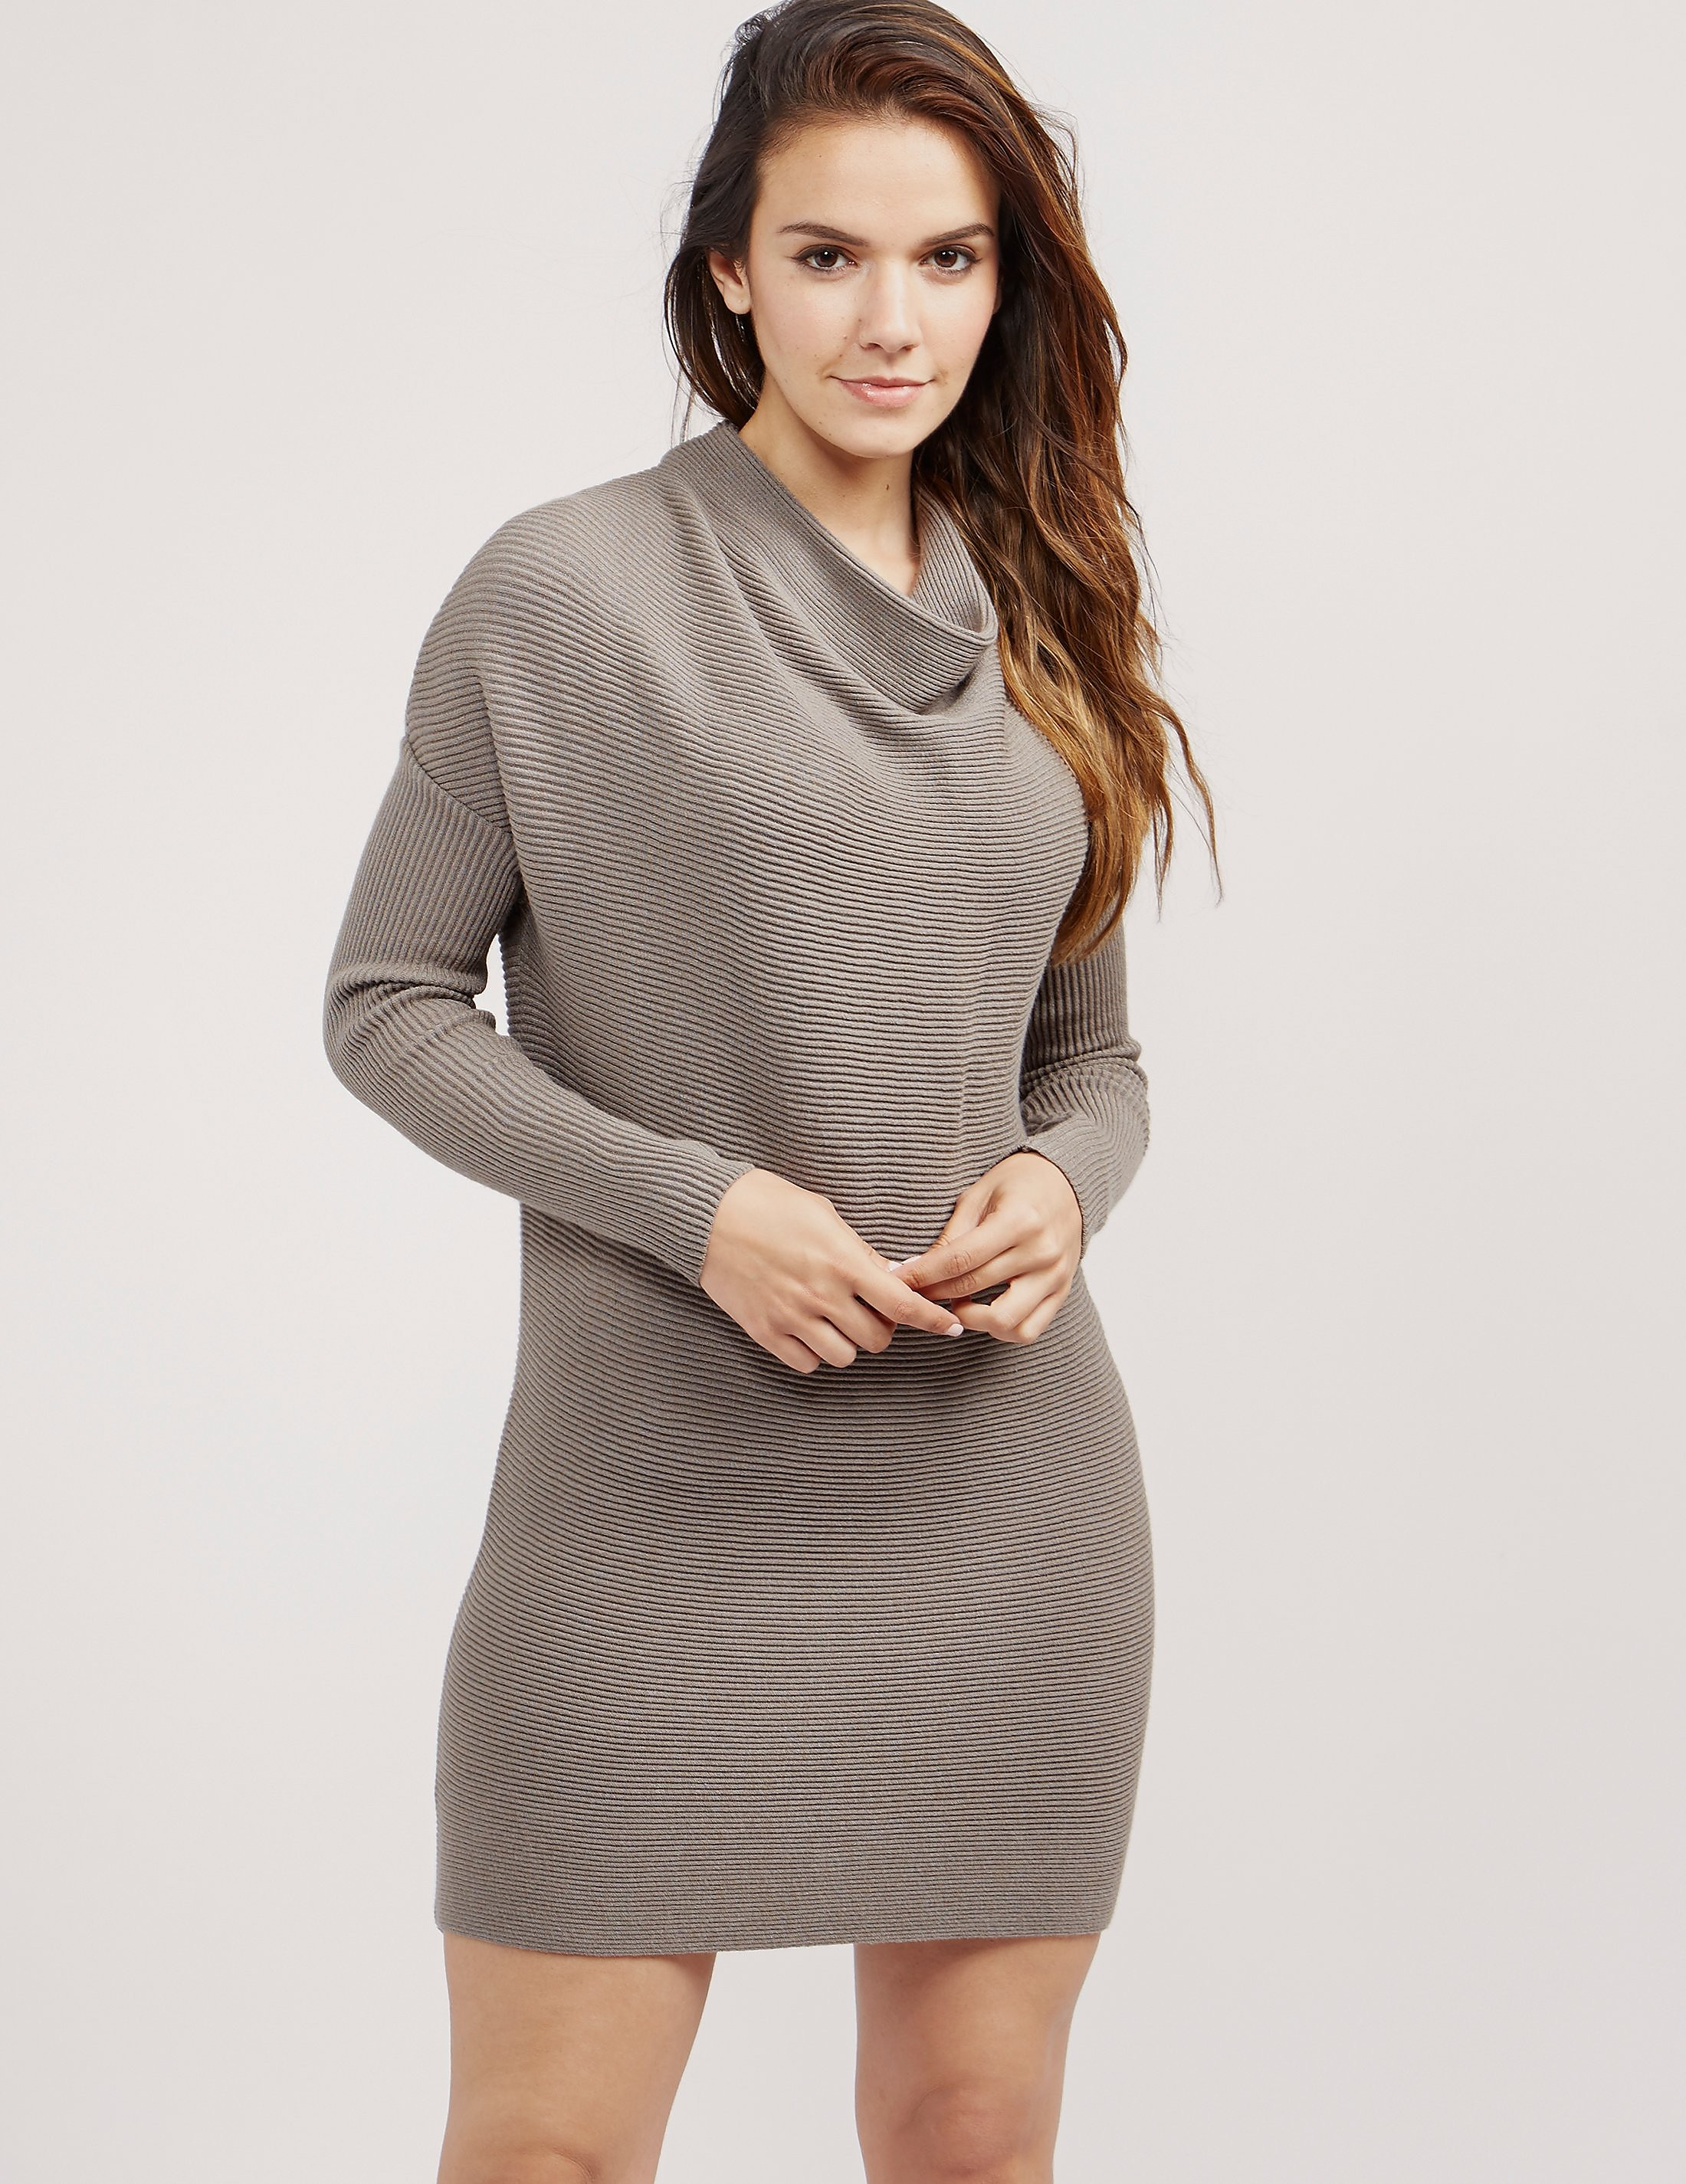 Armani Jeans Cowl Neck Dress